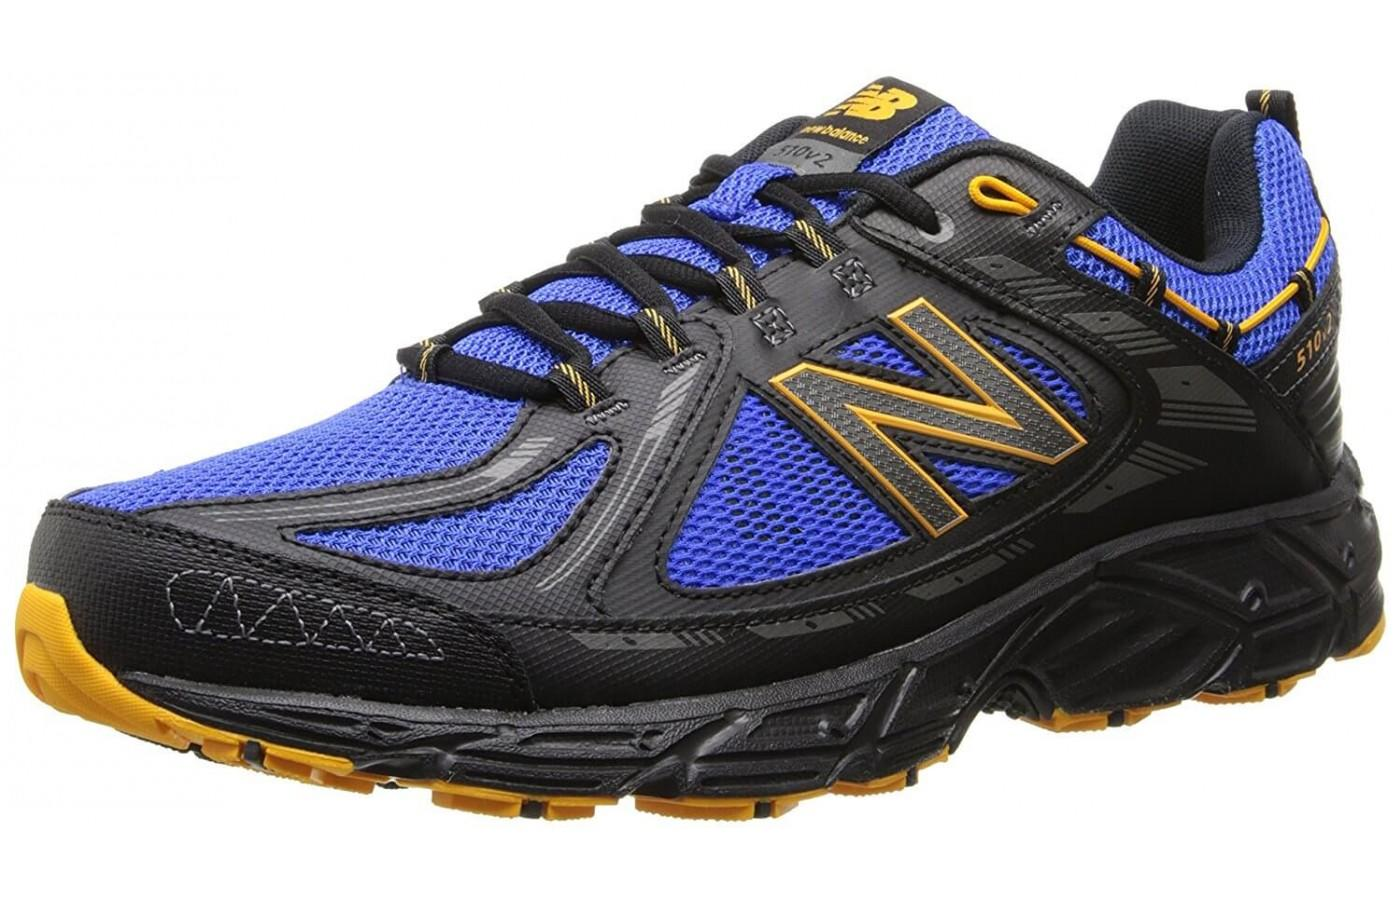 the New Balance 510 v2 is a durable and affordable trail runner